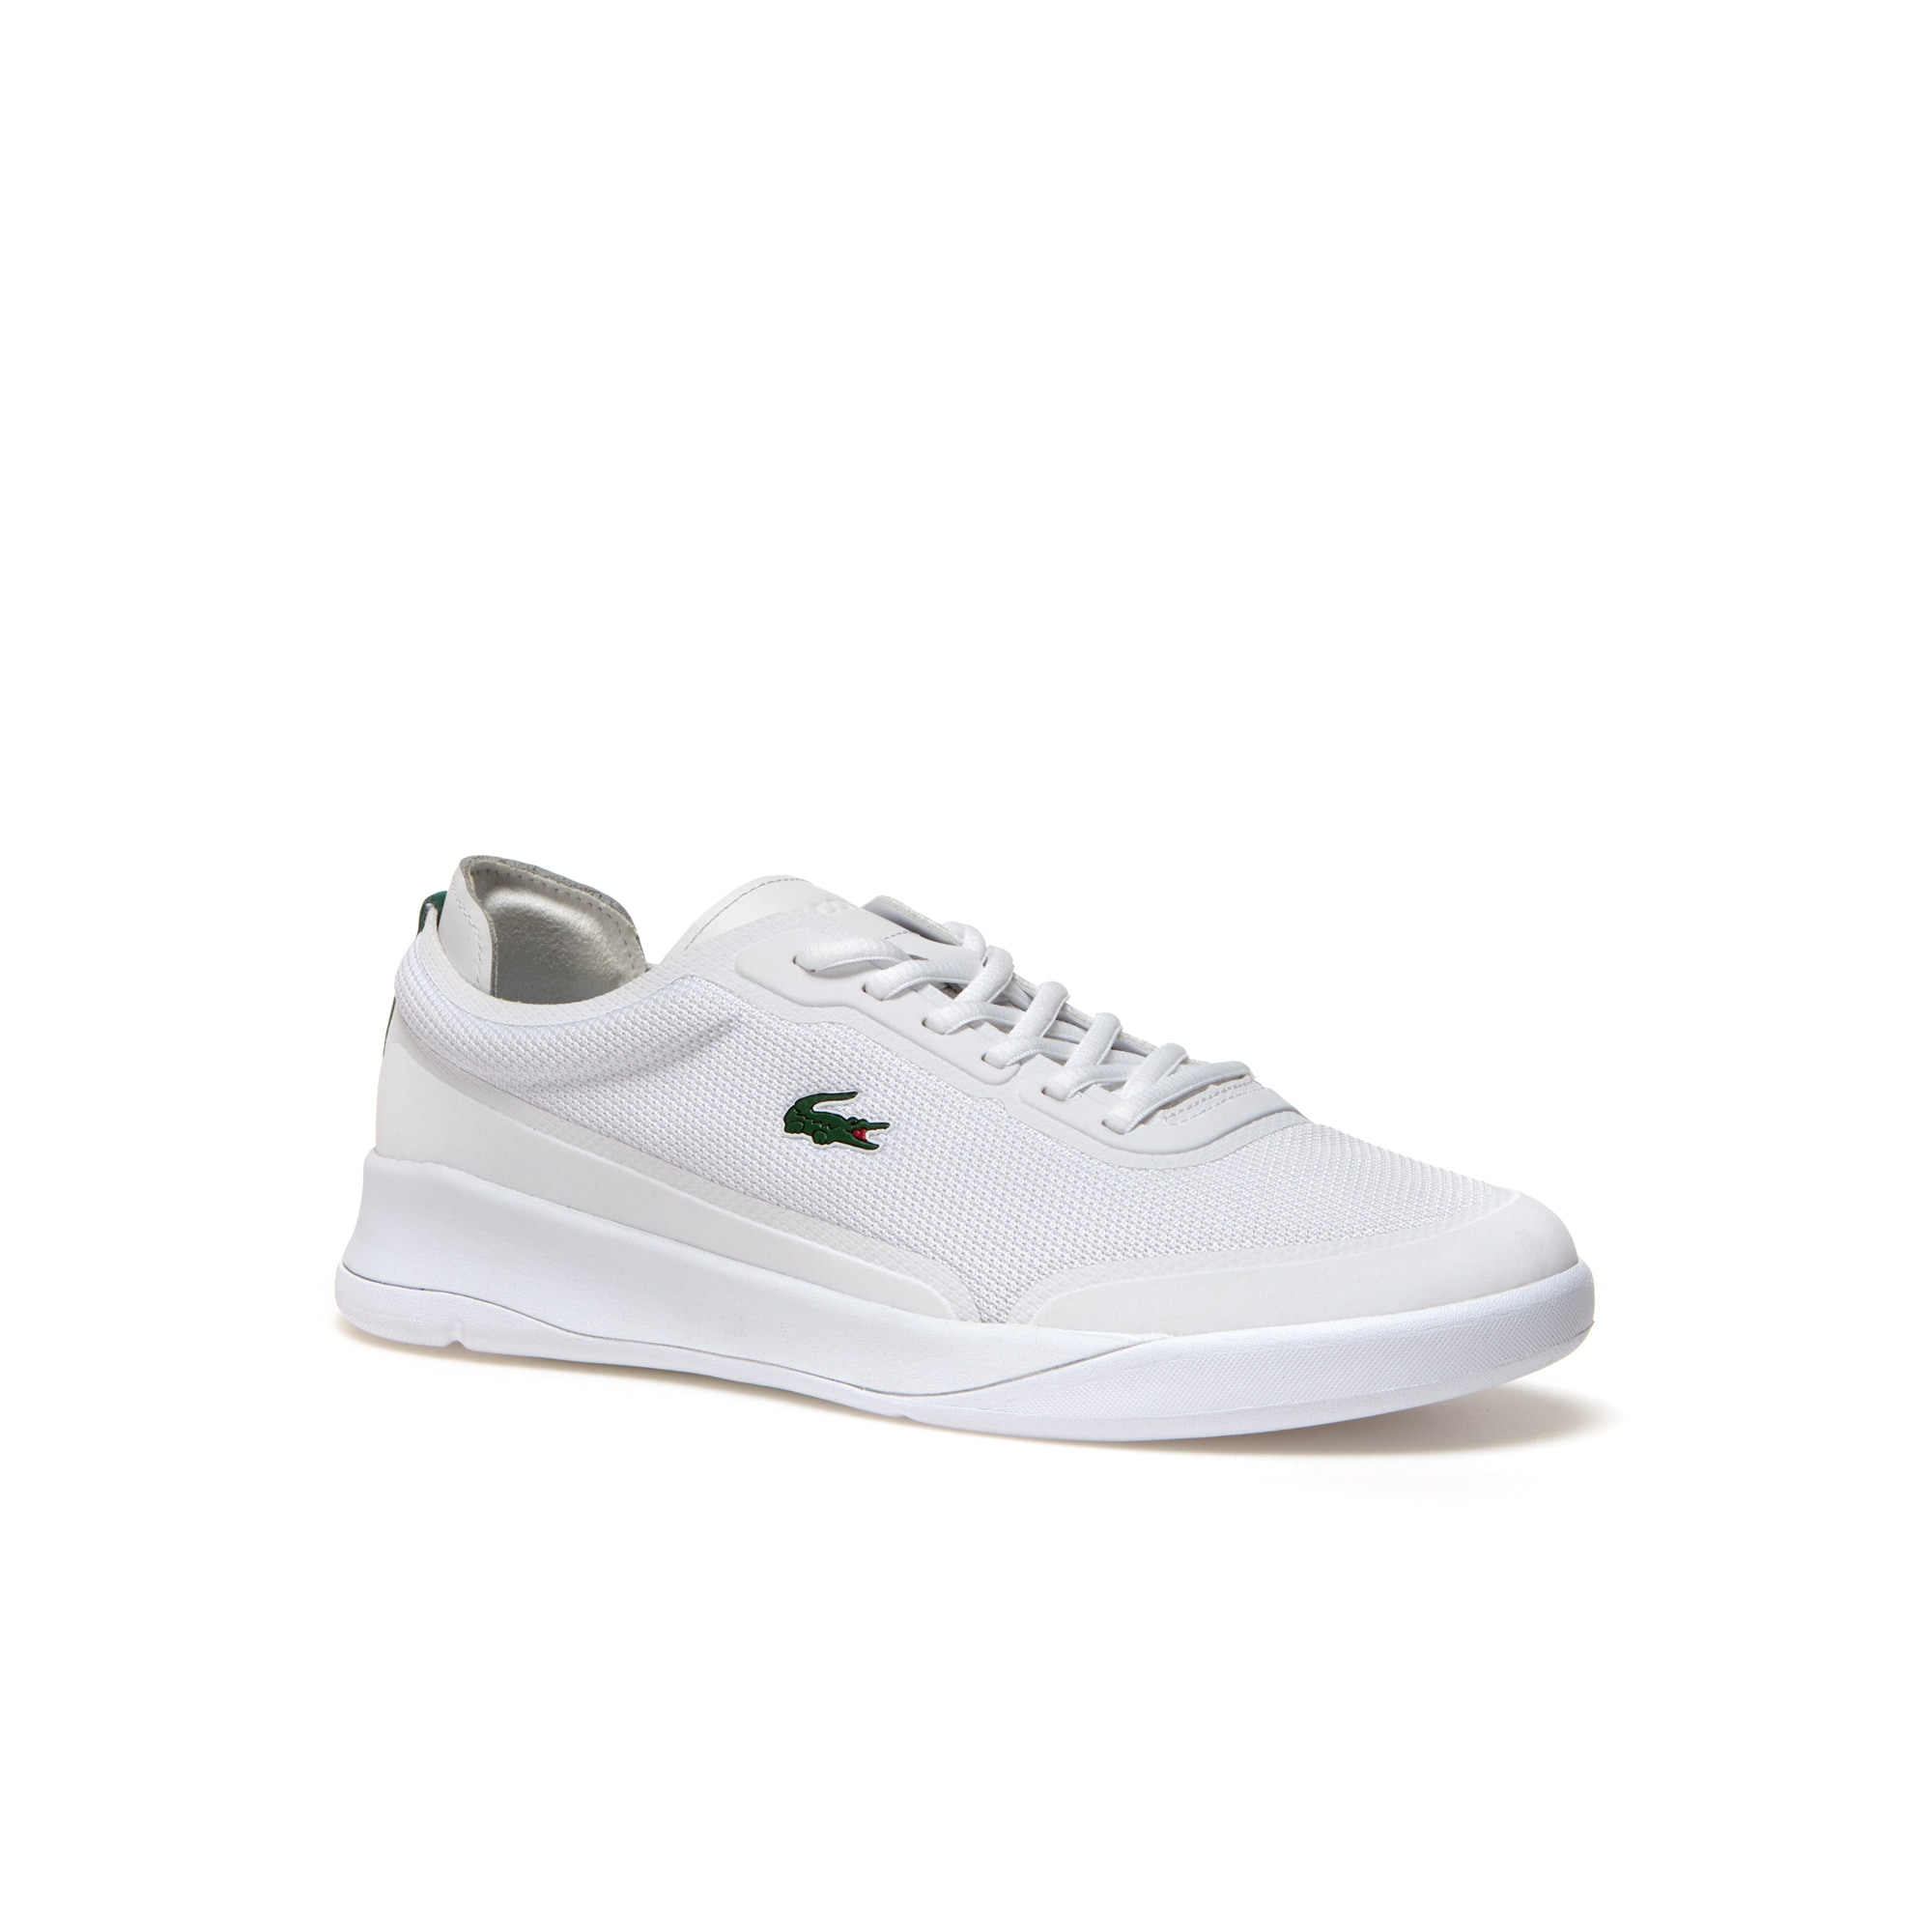 Men's LT Spirit Elite Textile Sneakers